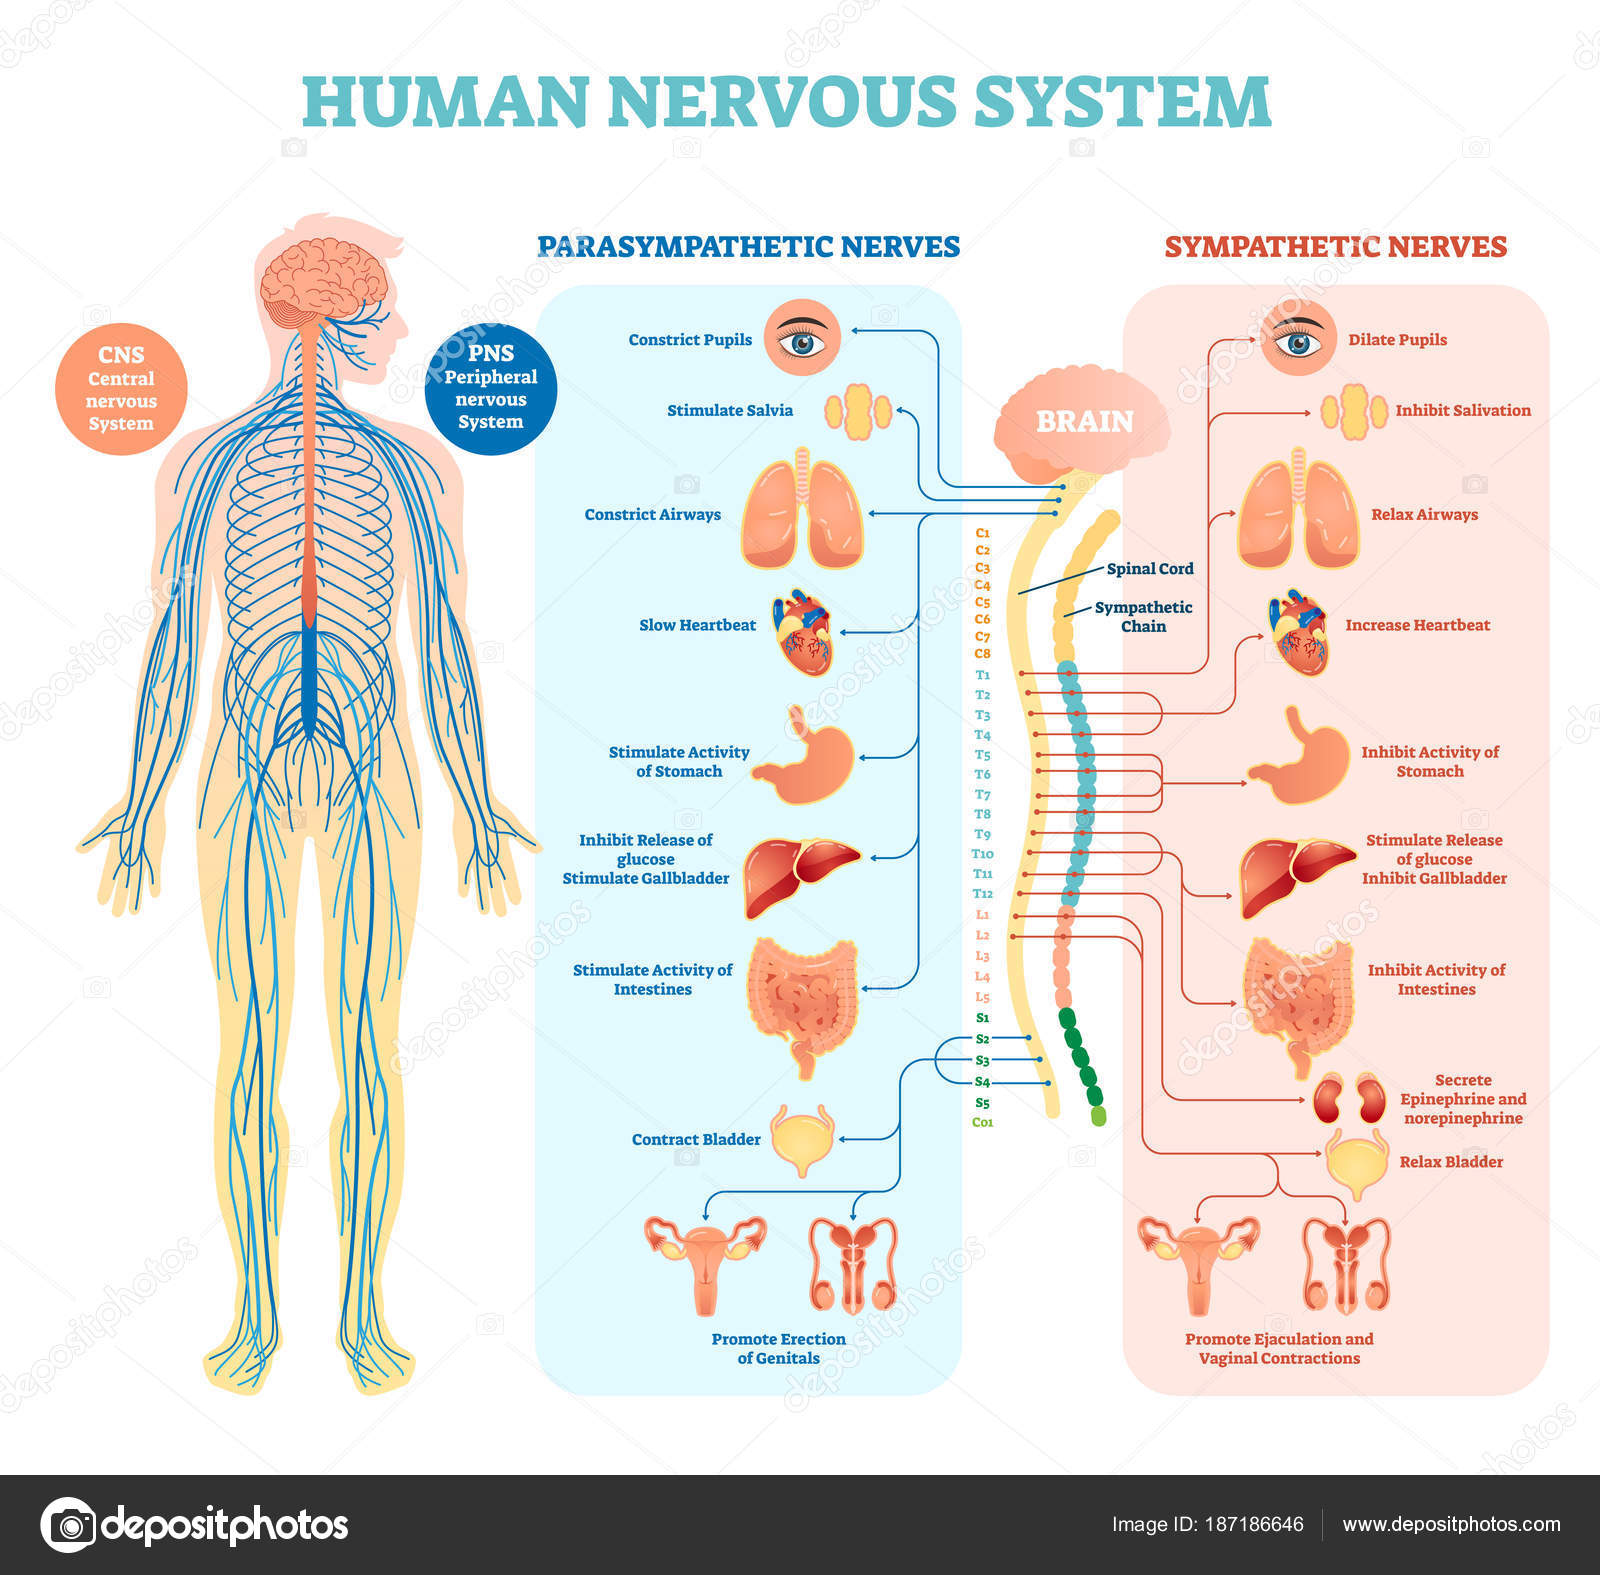 Human nervous system medical vector illustration diagram with human nervous system medical vector illustration diagram with parasympathetic and sympathetic nerves and all connected inner ccuart Gallery